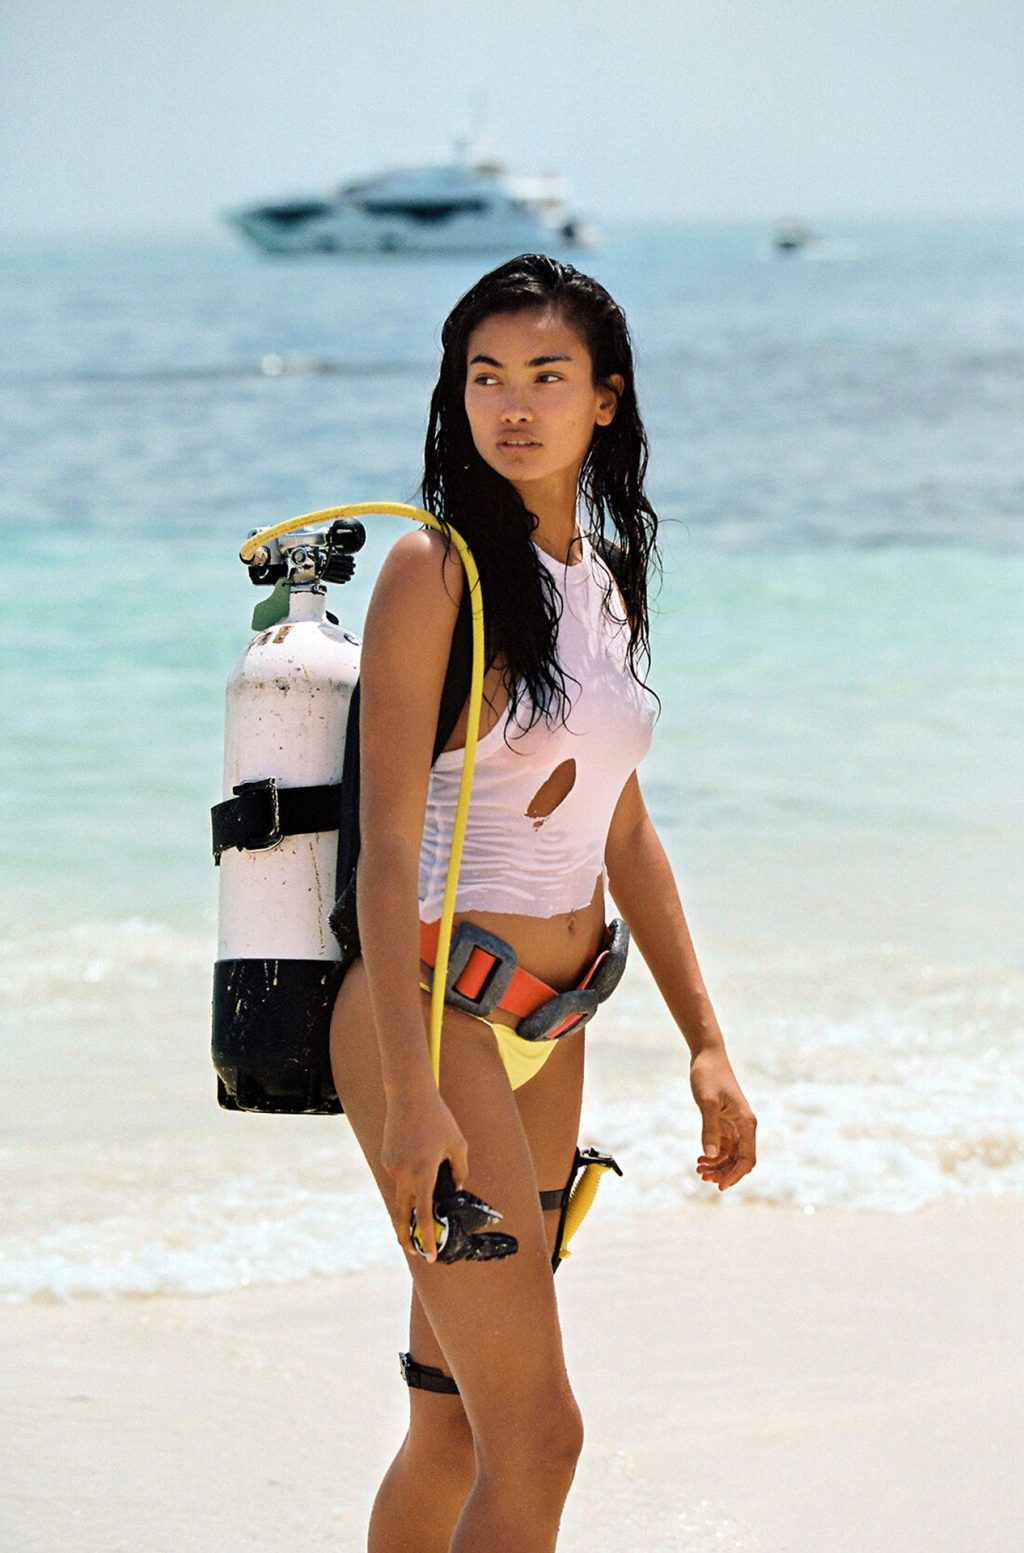 Kelly Gale's Tits & Ass (35 Photos)